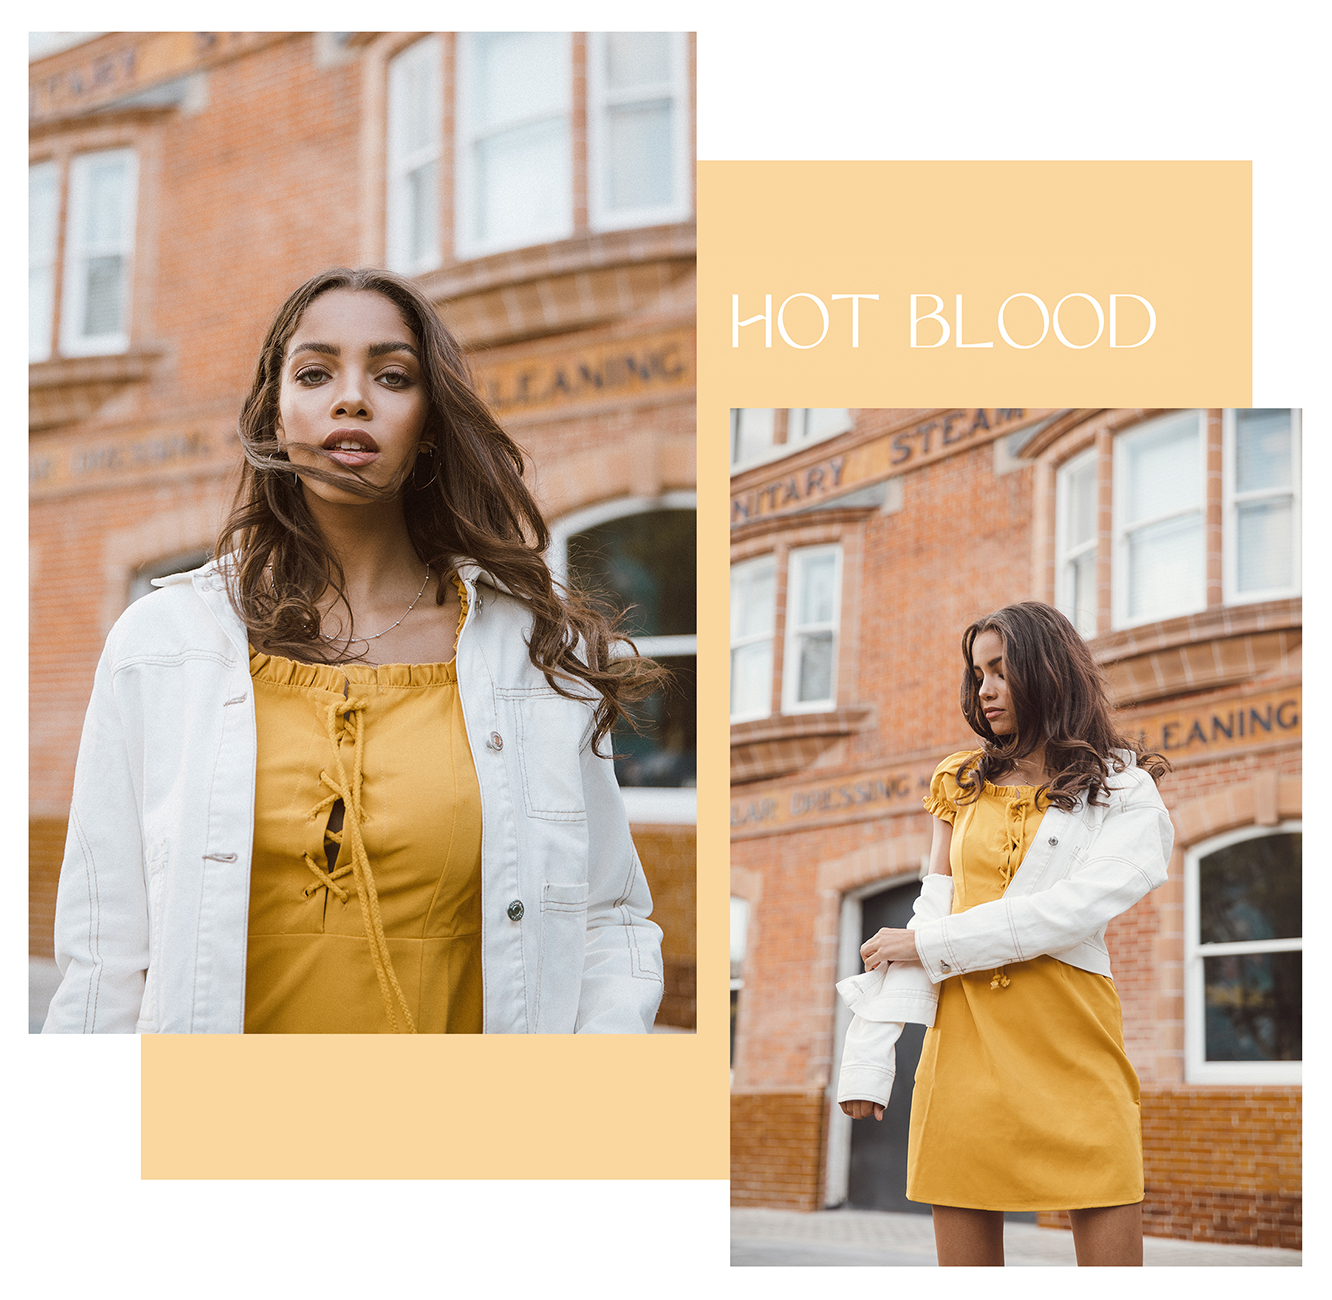 Melody @ The Squad fashion editorial Hot Blood for Off the Rails magazine by photographer Ailera Stone